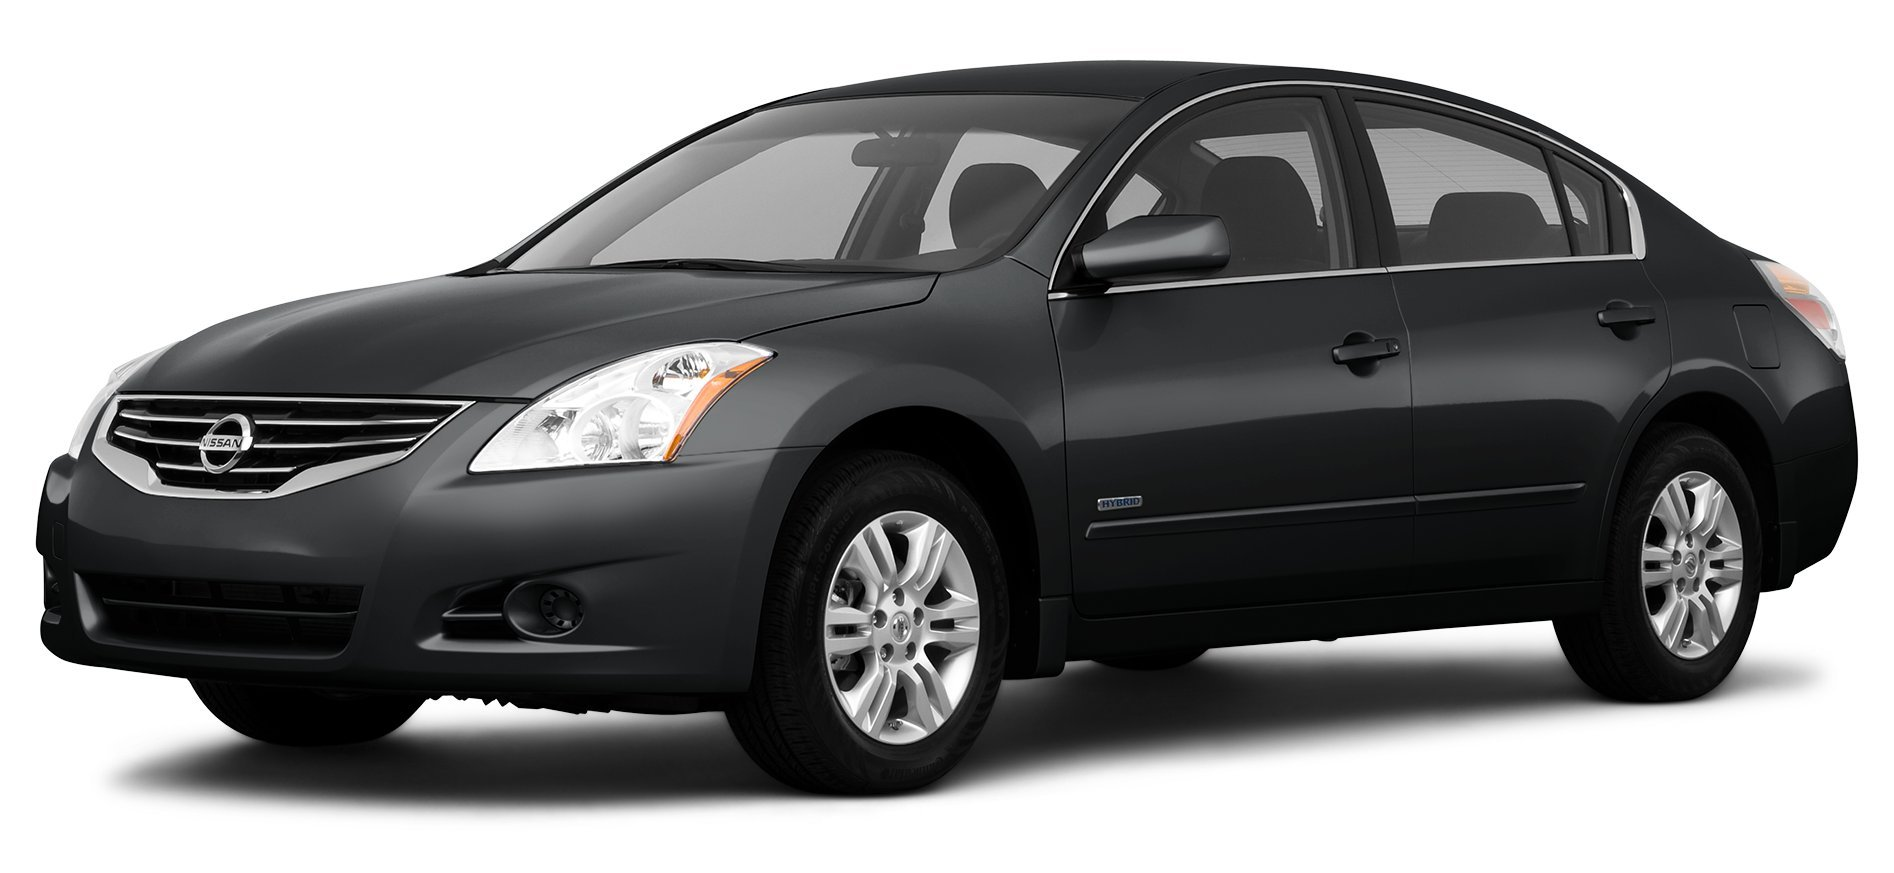 2010 nissan altima reviews images and specs vehicles. Black Bedroom Furniture Sets. Home Design Ideas